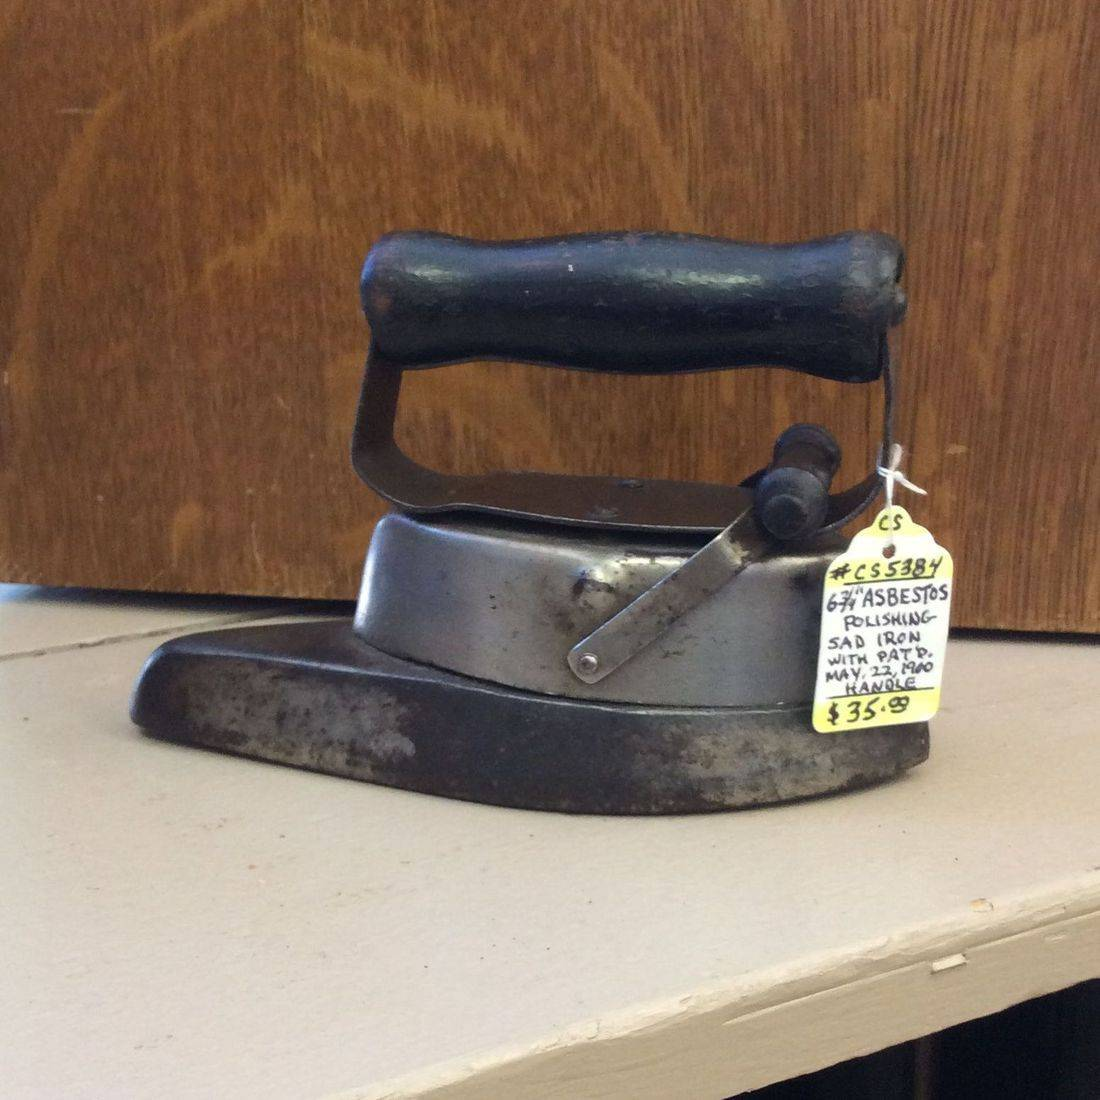 "Pat. 1900  Asbestos 6-3/4""L  Polishing Sad Iron   $35.00"